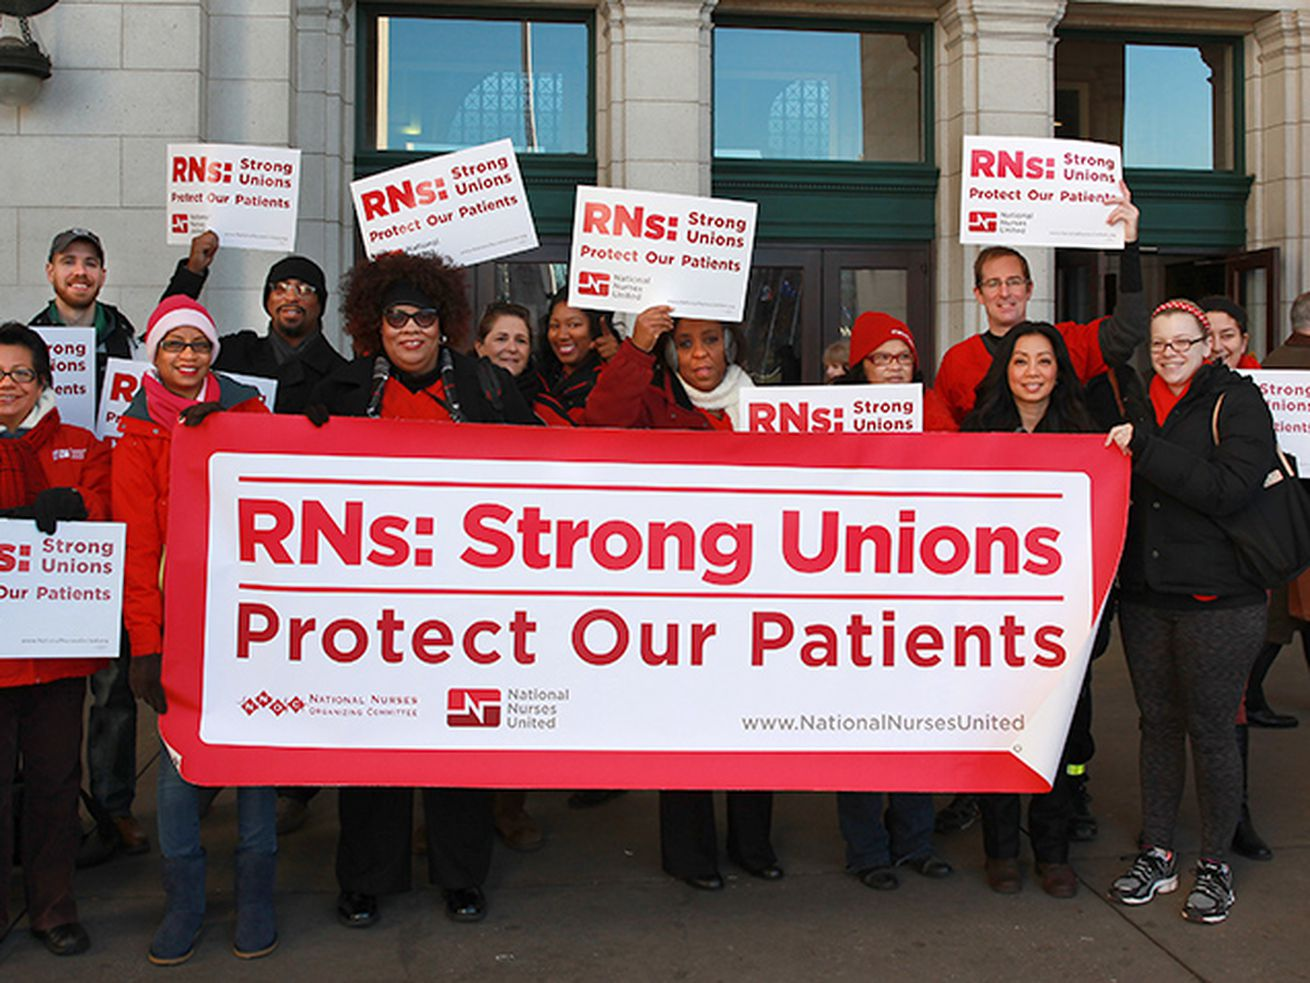 Nurses conduct informational picketing earlier this year outside the University of Chicago Medical Center.